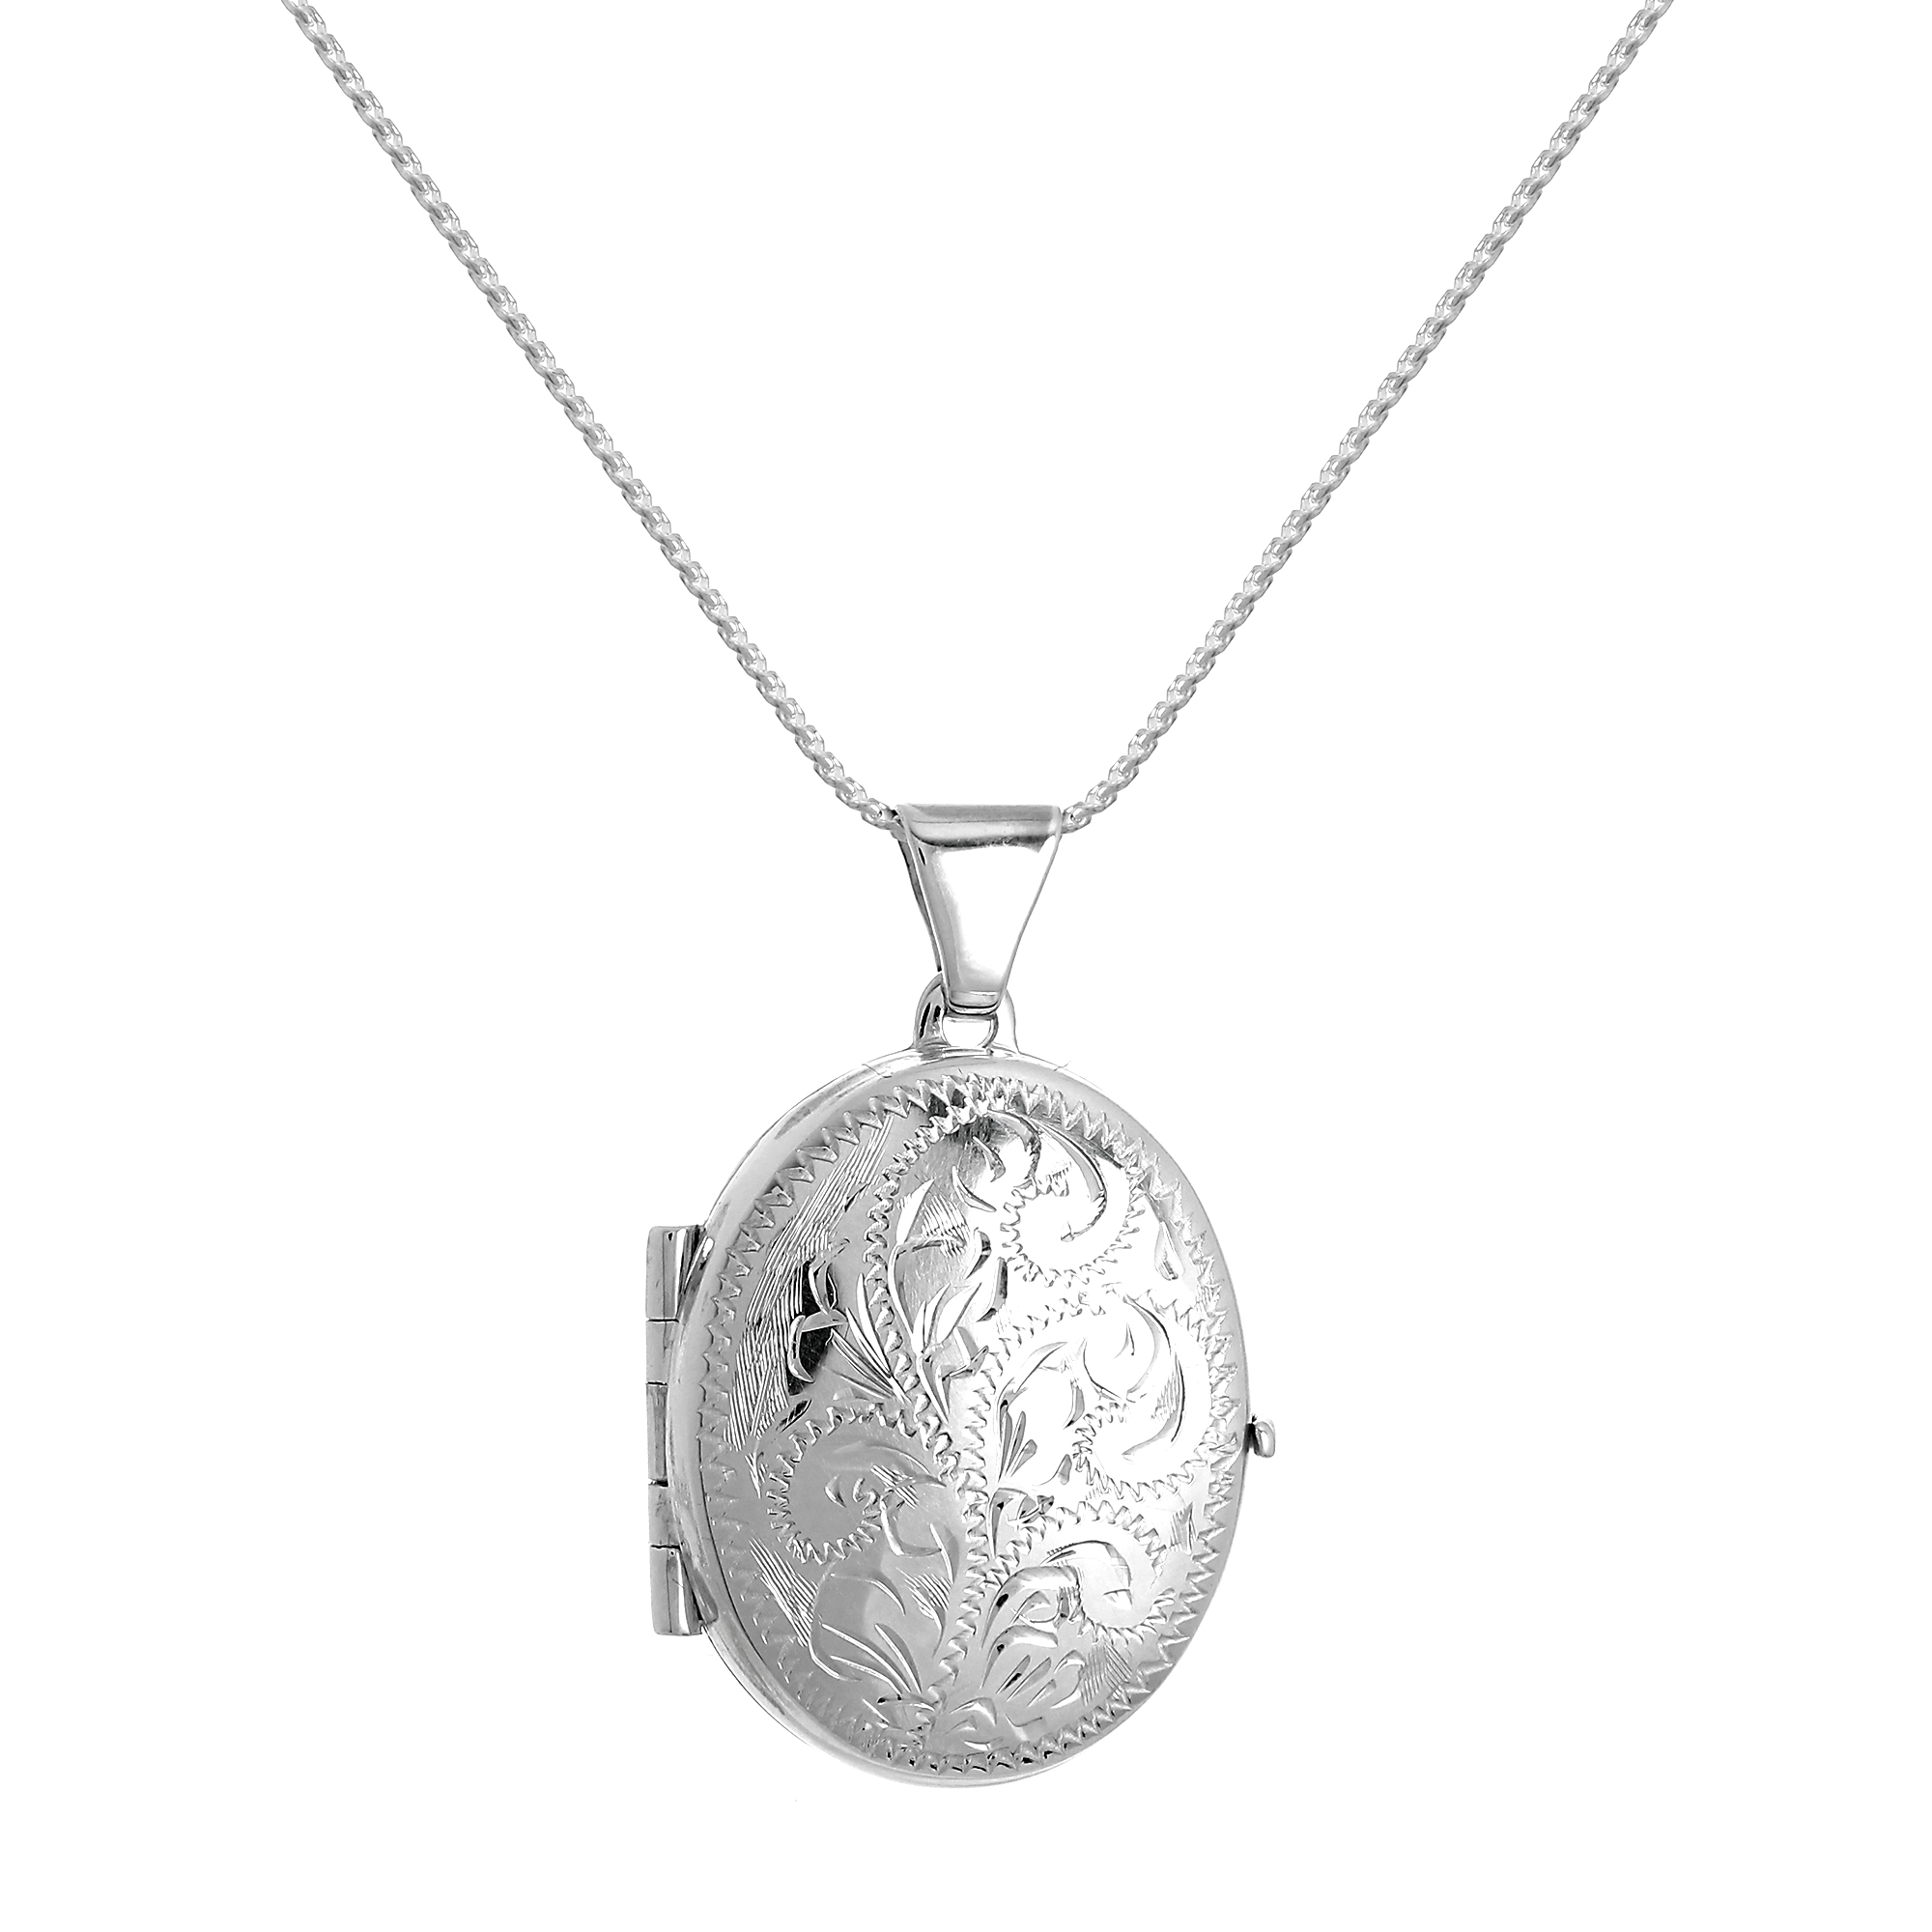 An image of Sterling Silver Engraved Oval 4 Photo Family Locket on 20 Inch Chain